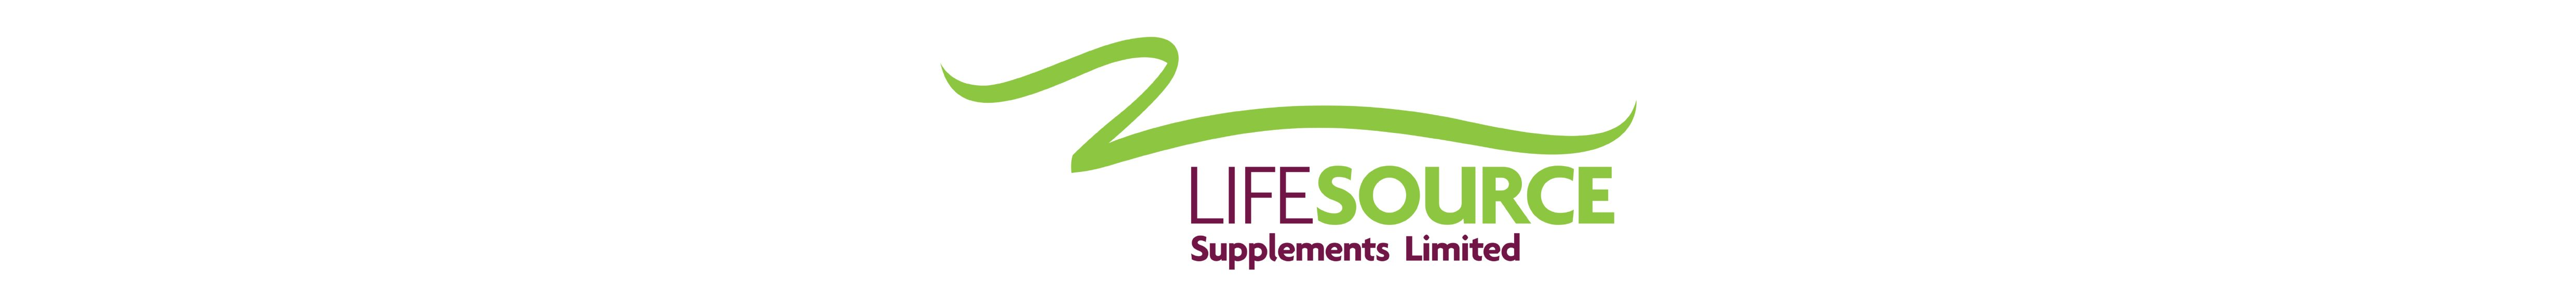 LIFESOURCE SUPPLEMENTS – Specialists in private label and contract